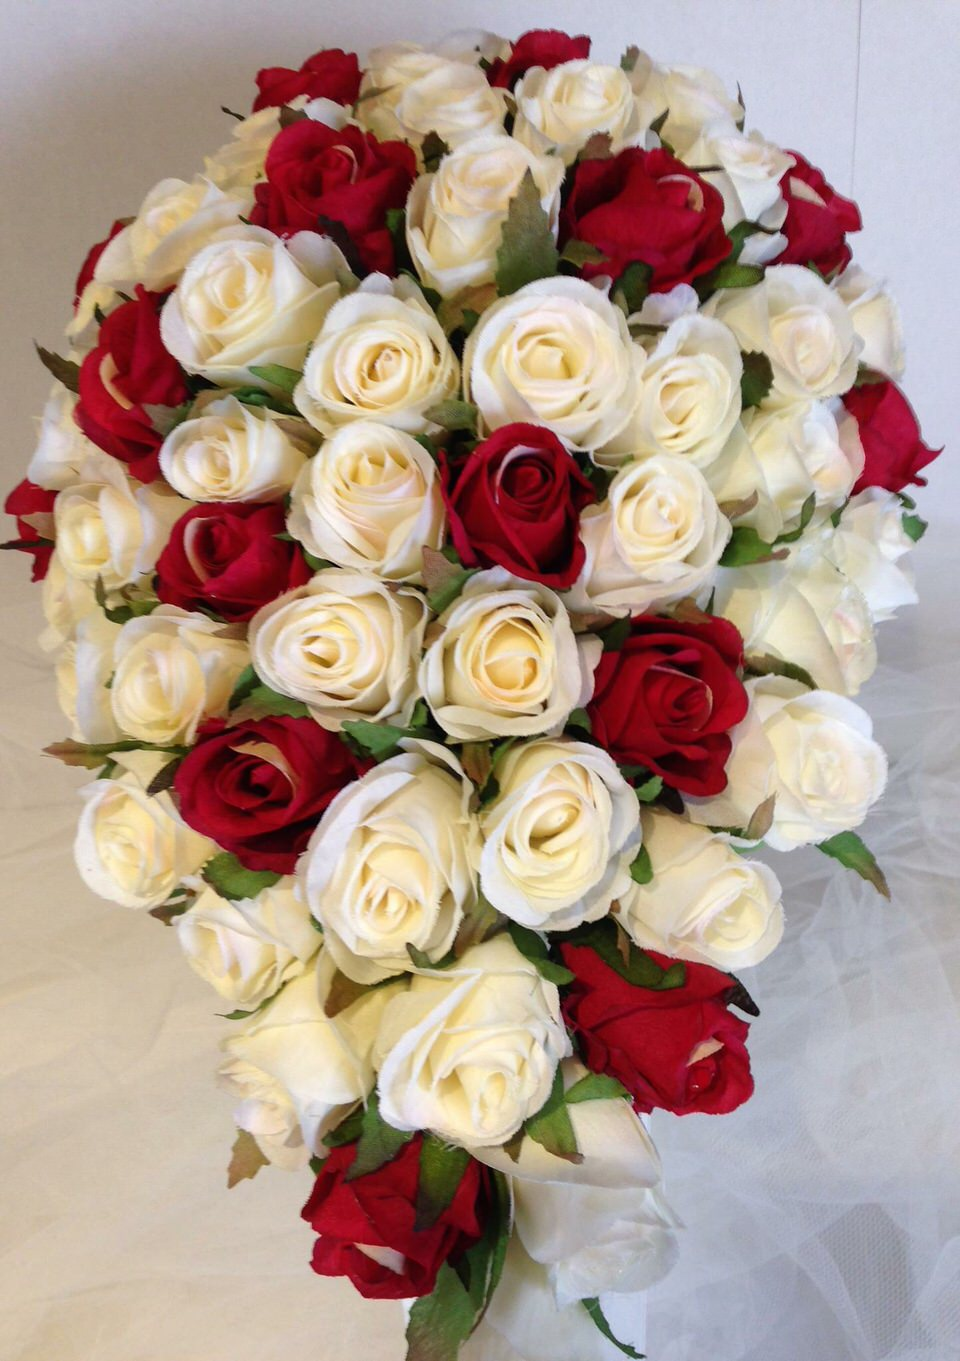 Ivory Bright Red Roses Teardrop 60 Buds Wedding Bouquet Artificial